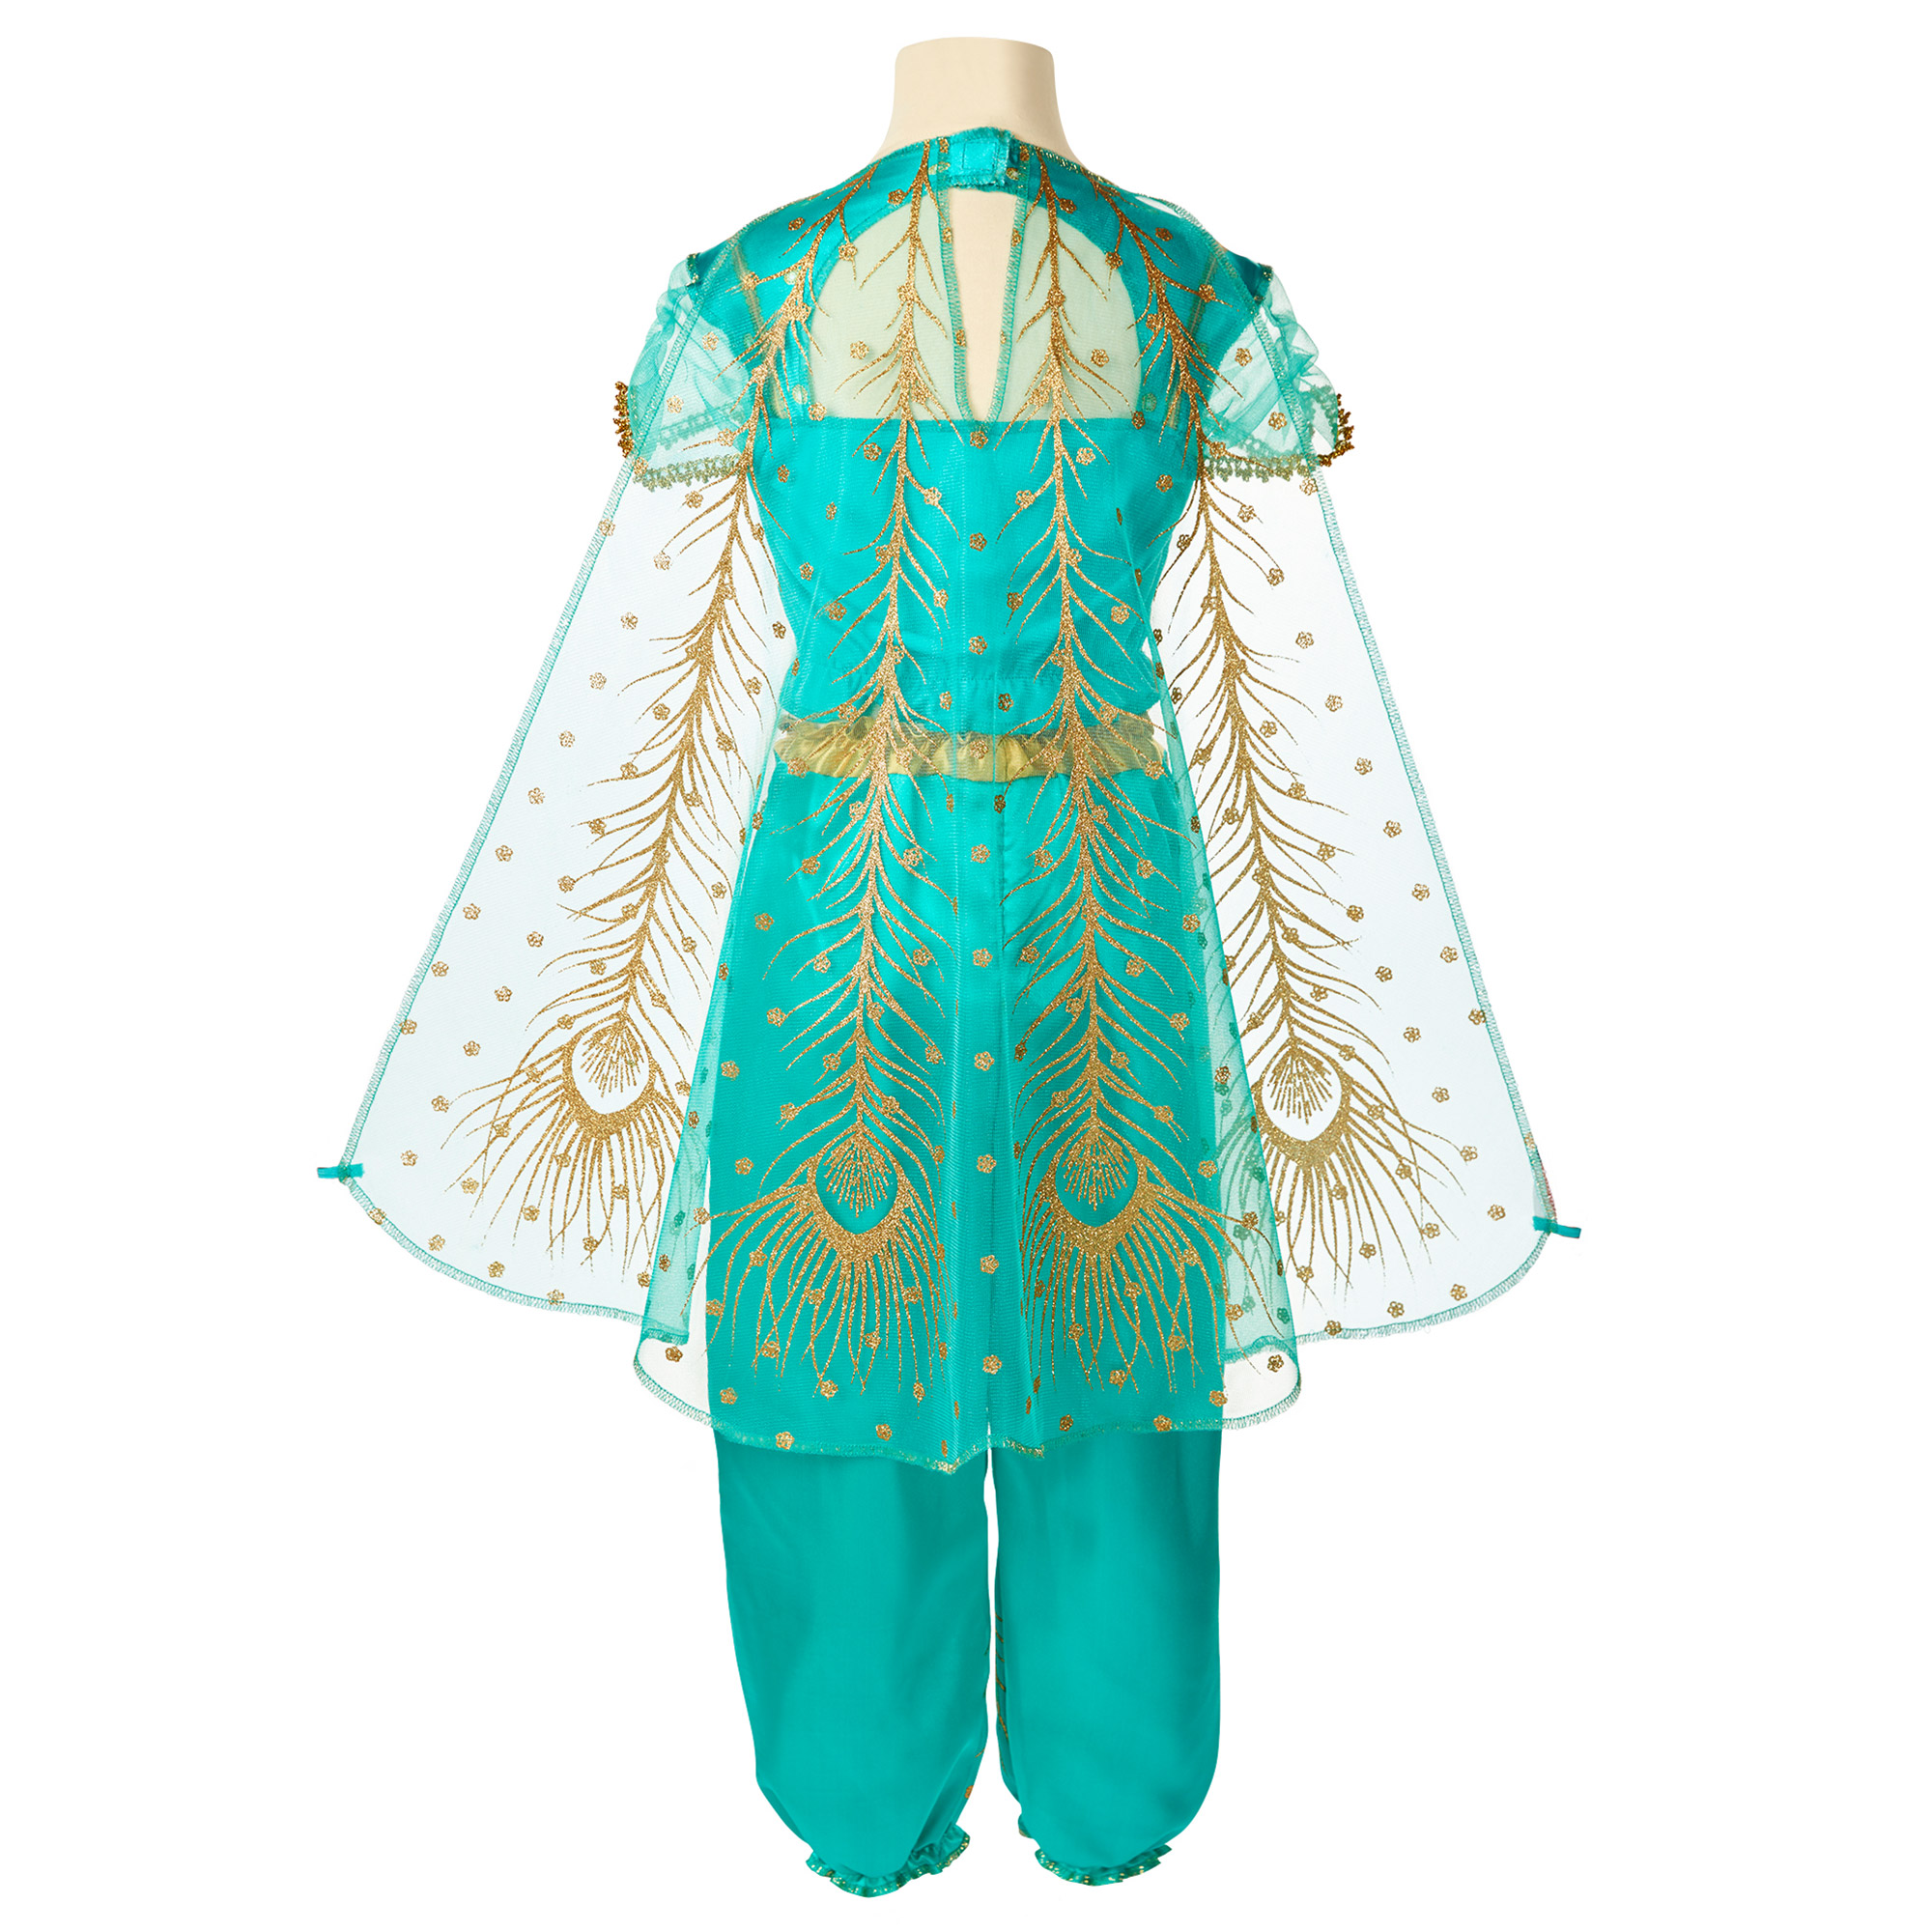 Disney Aladdin Jasmine Teal Dress